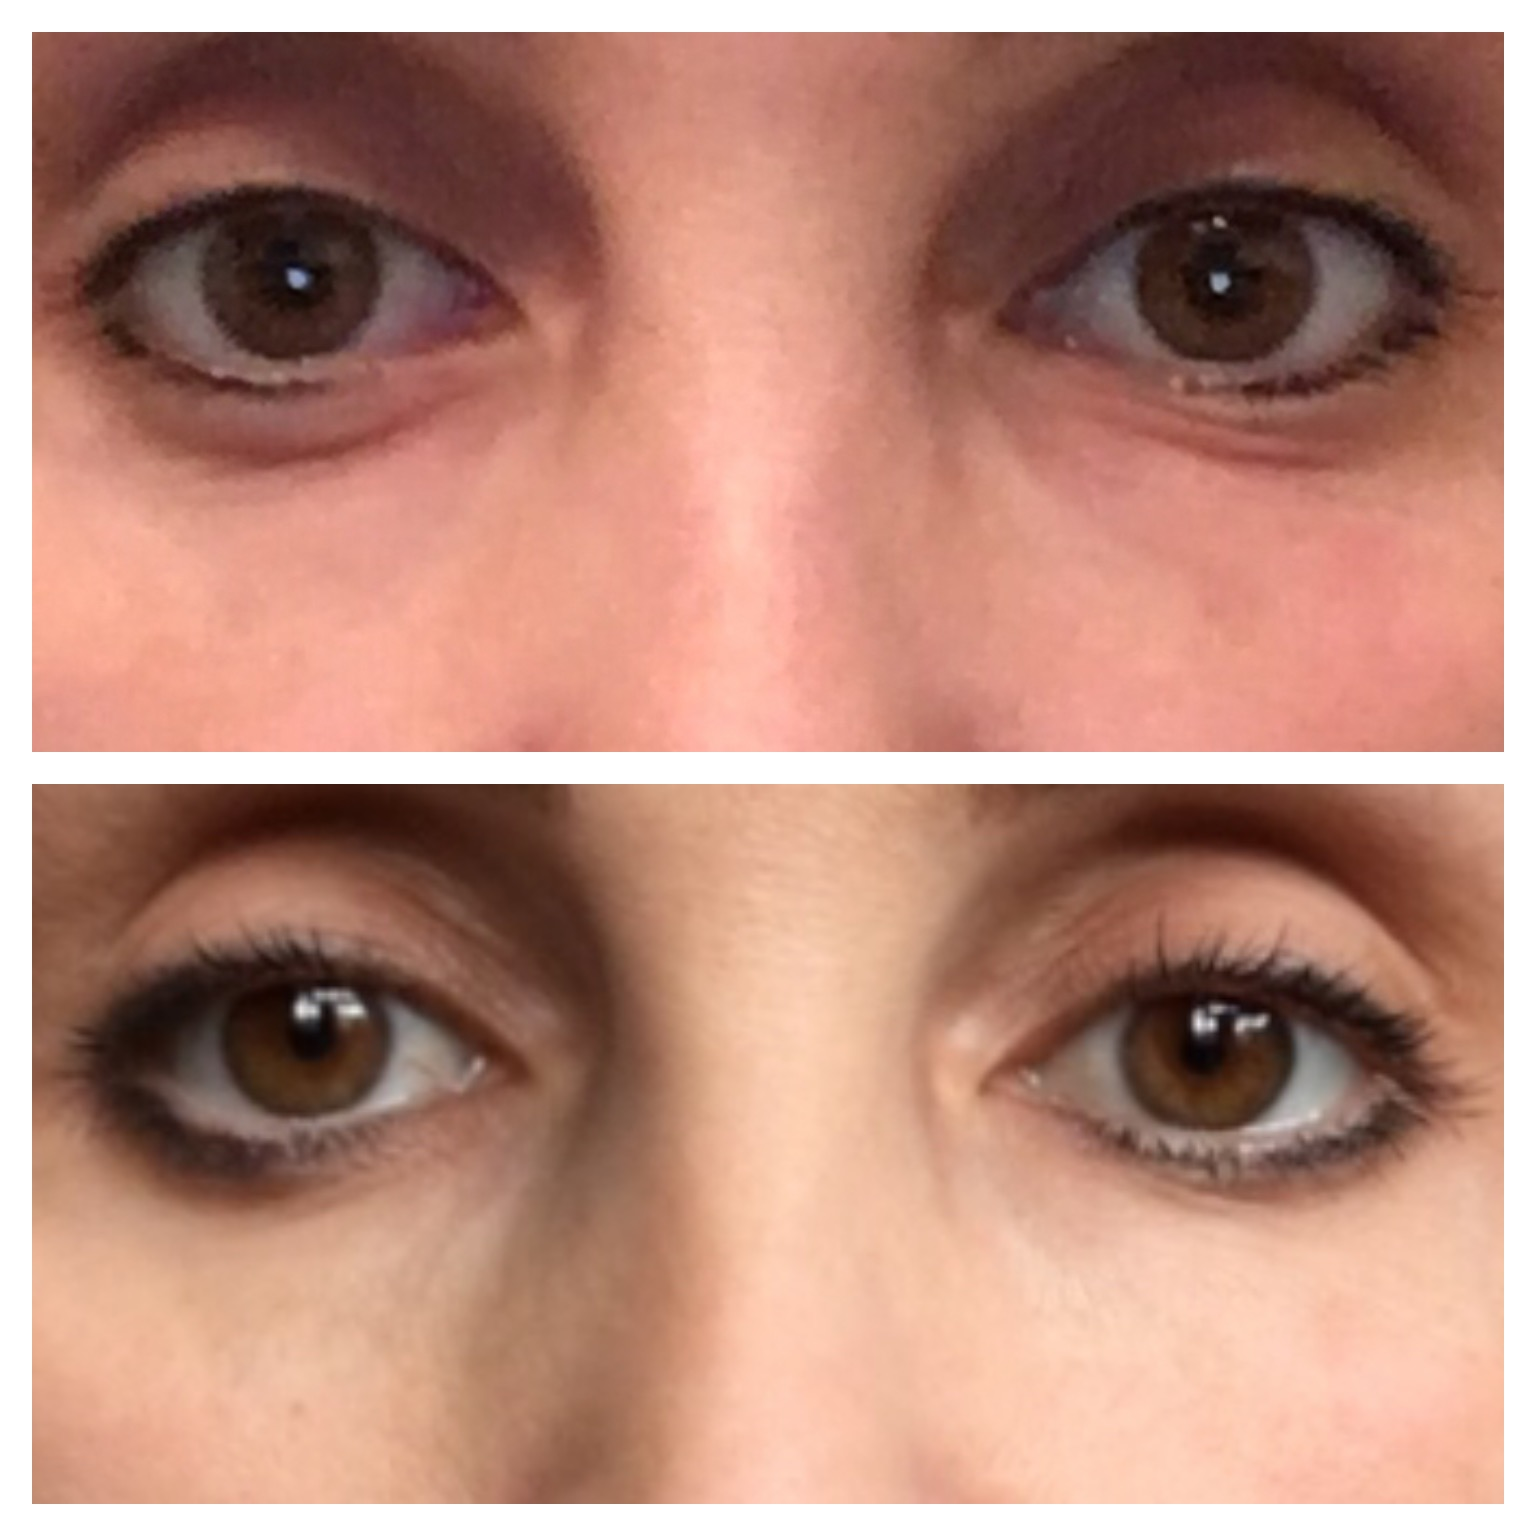 No more tired eyes - before and after the 30 day challenge